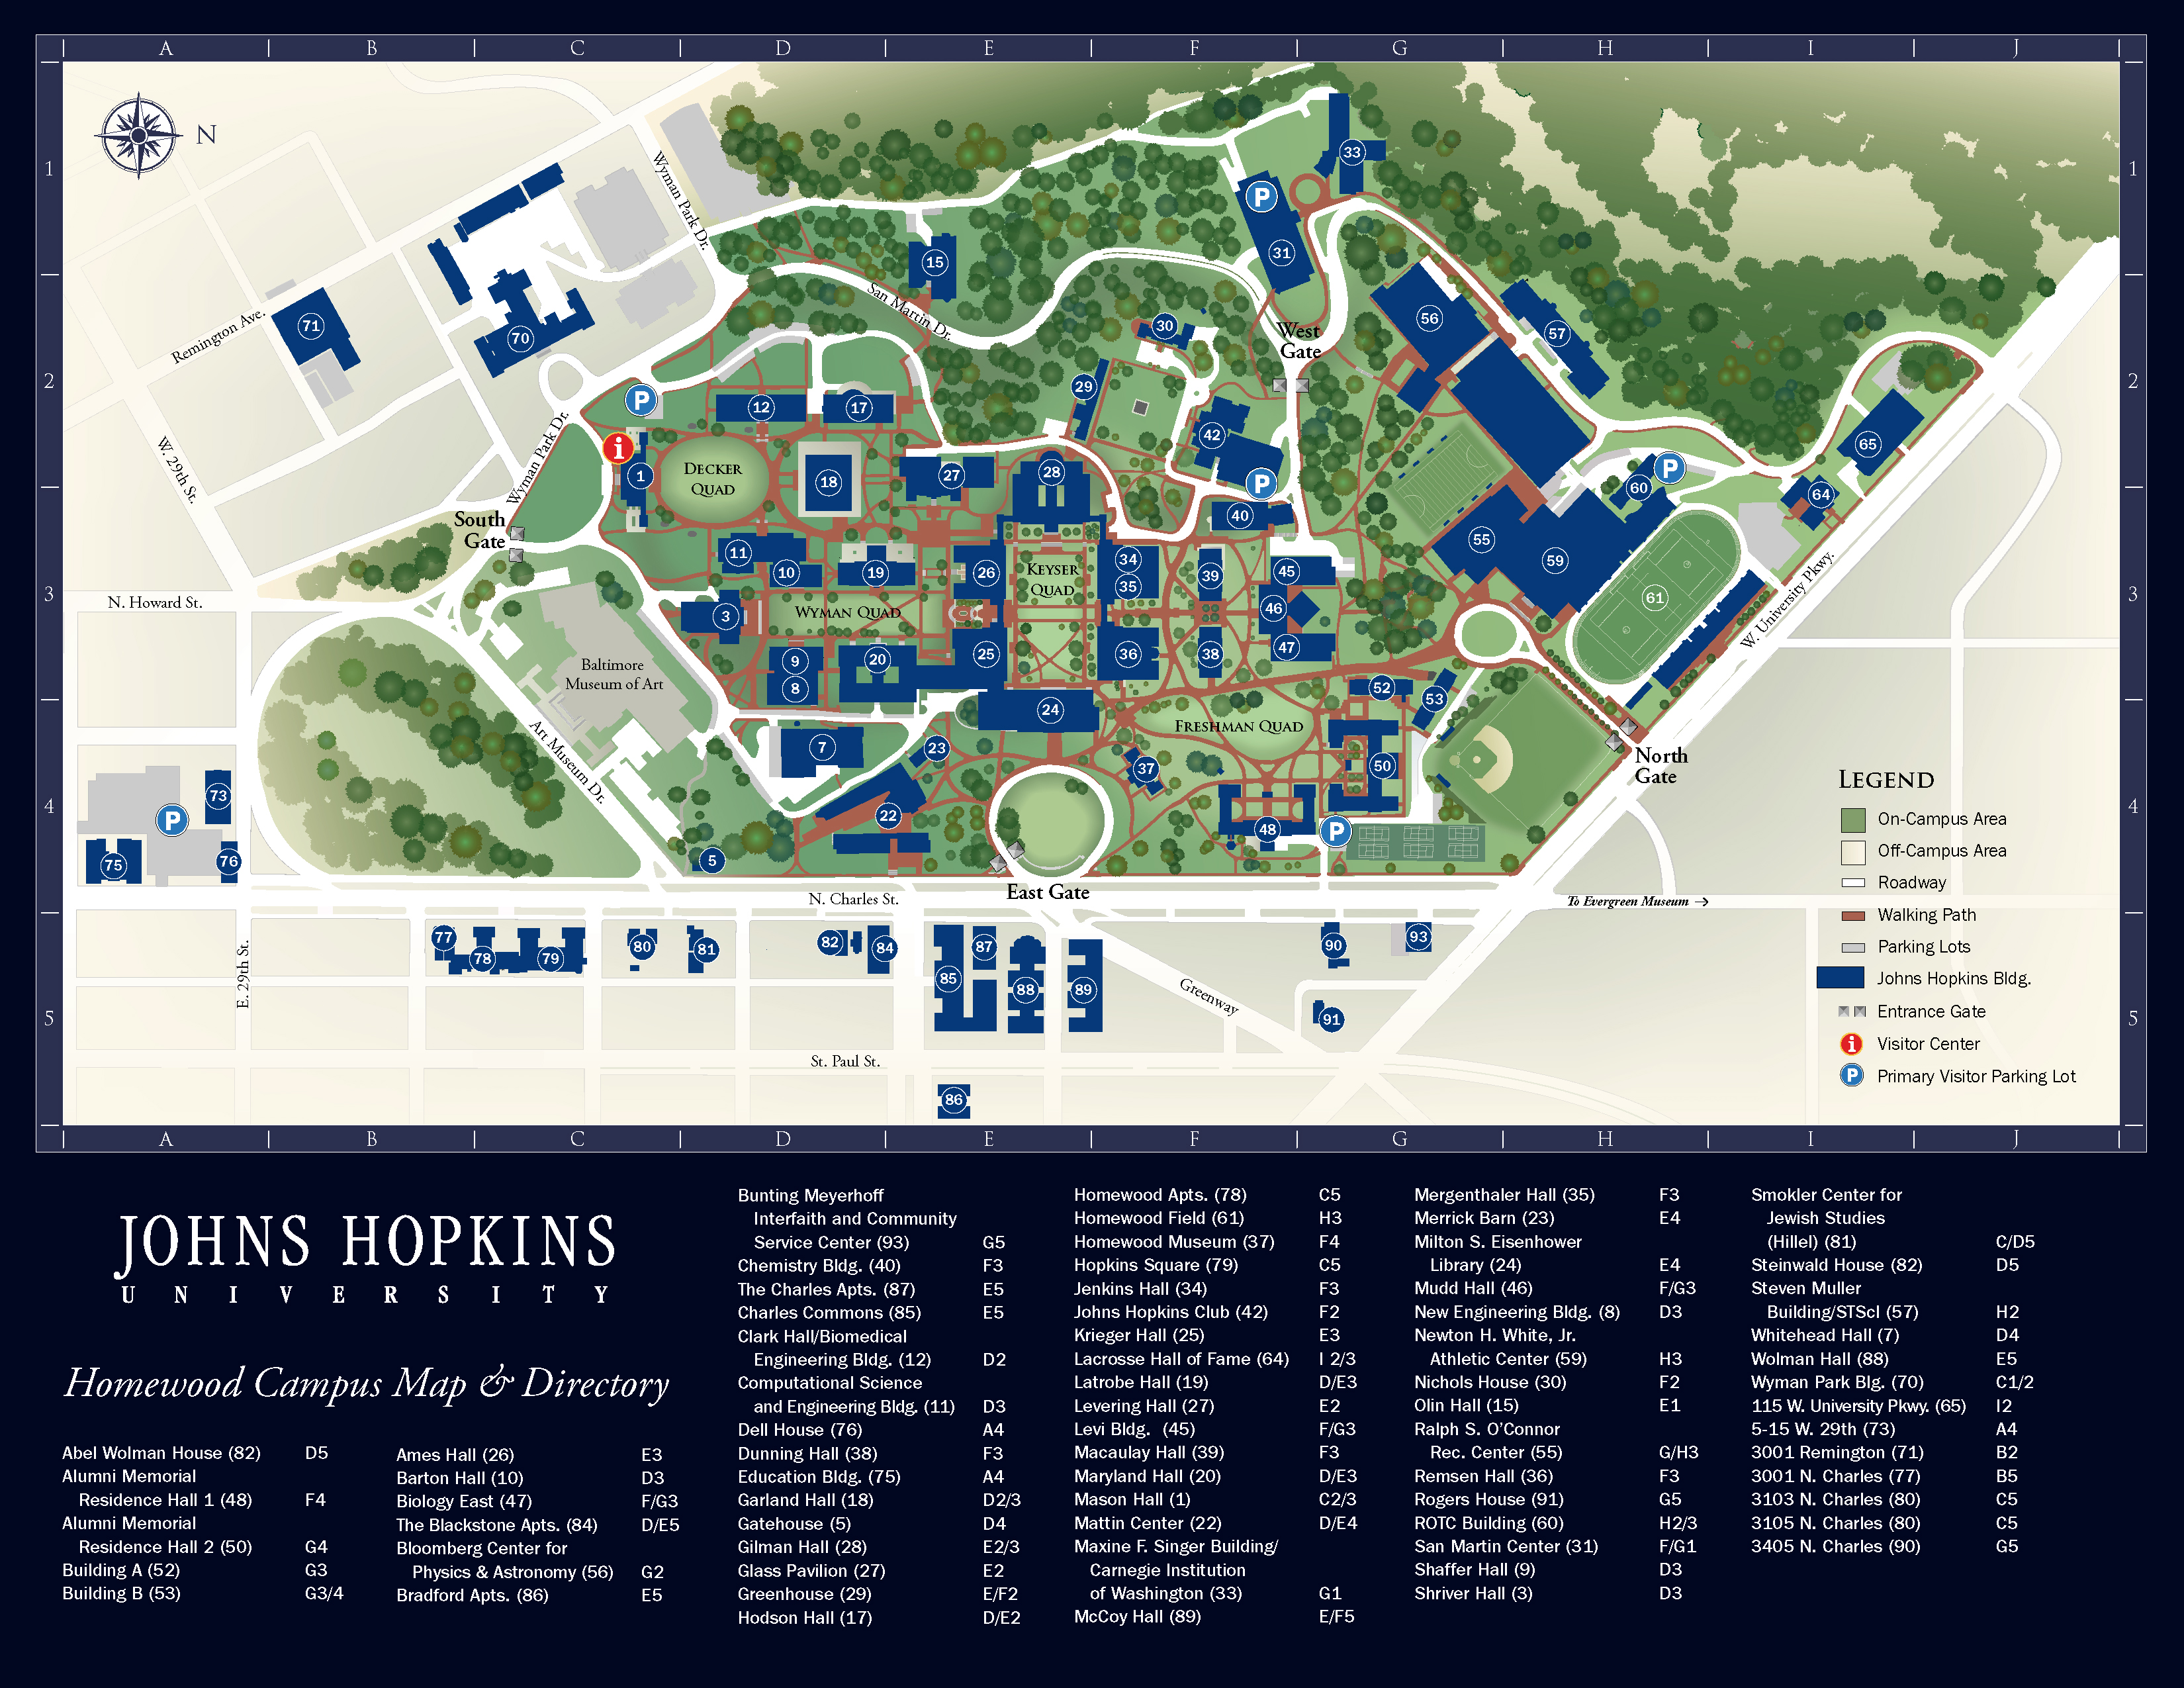 Campus map, Maps and Johns hopkins on Pinterest